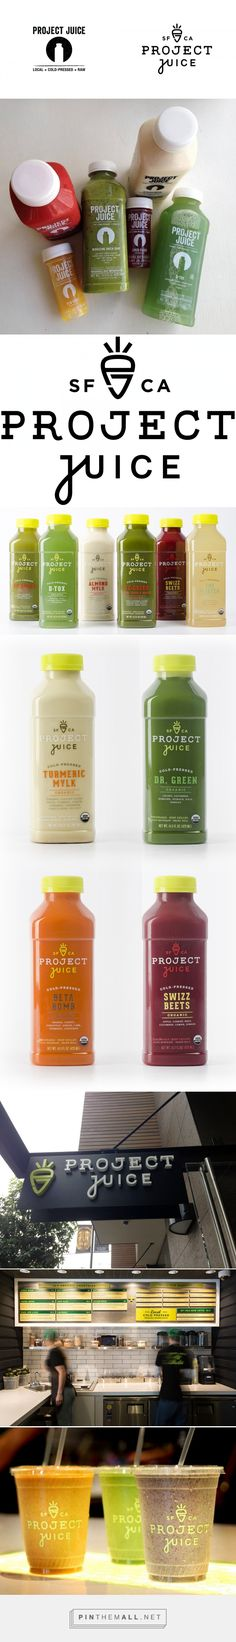 New Logo and Packaging for Project Juice by Chen Design Associates curated by Packaging Diva PD. Tasty looking shop and packaging.